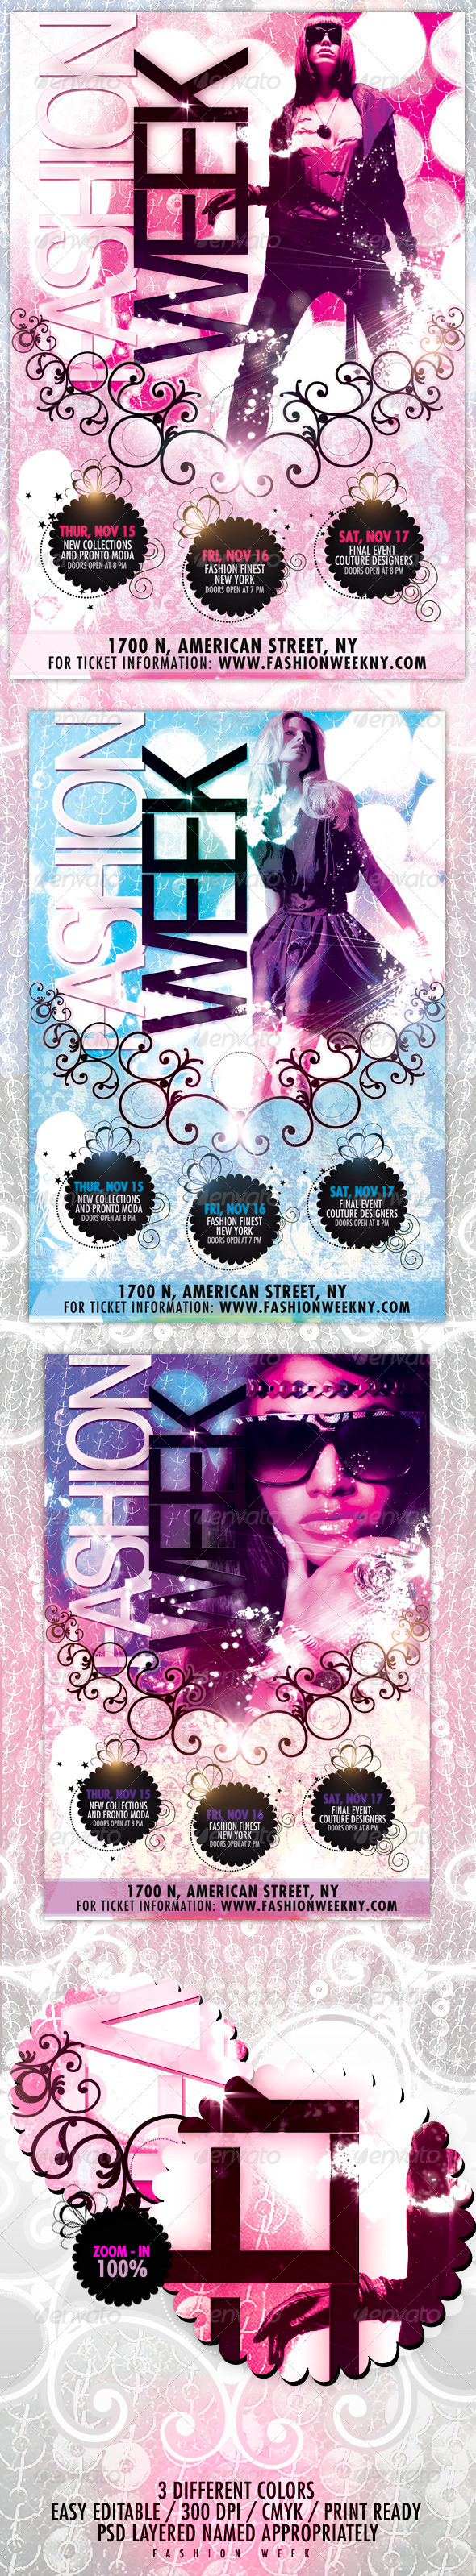 Fashion Week Flyer - Miscellaneous Events